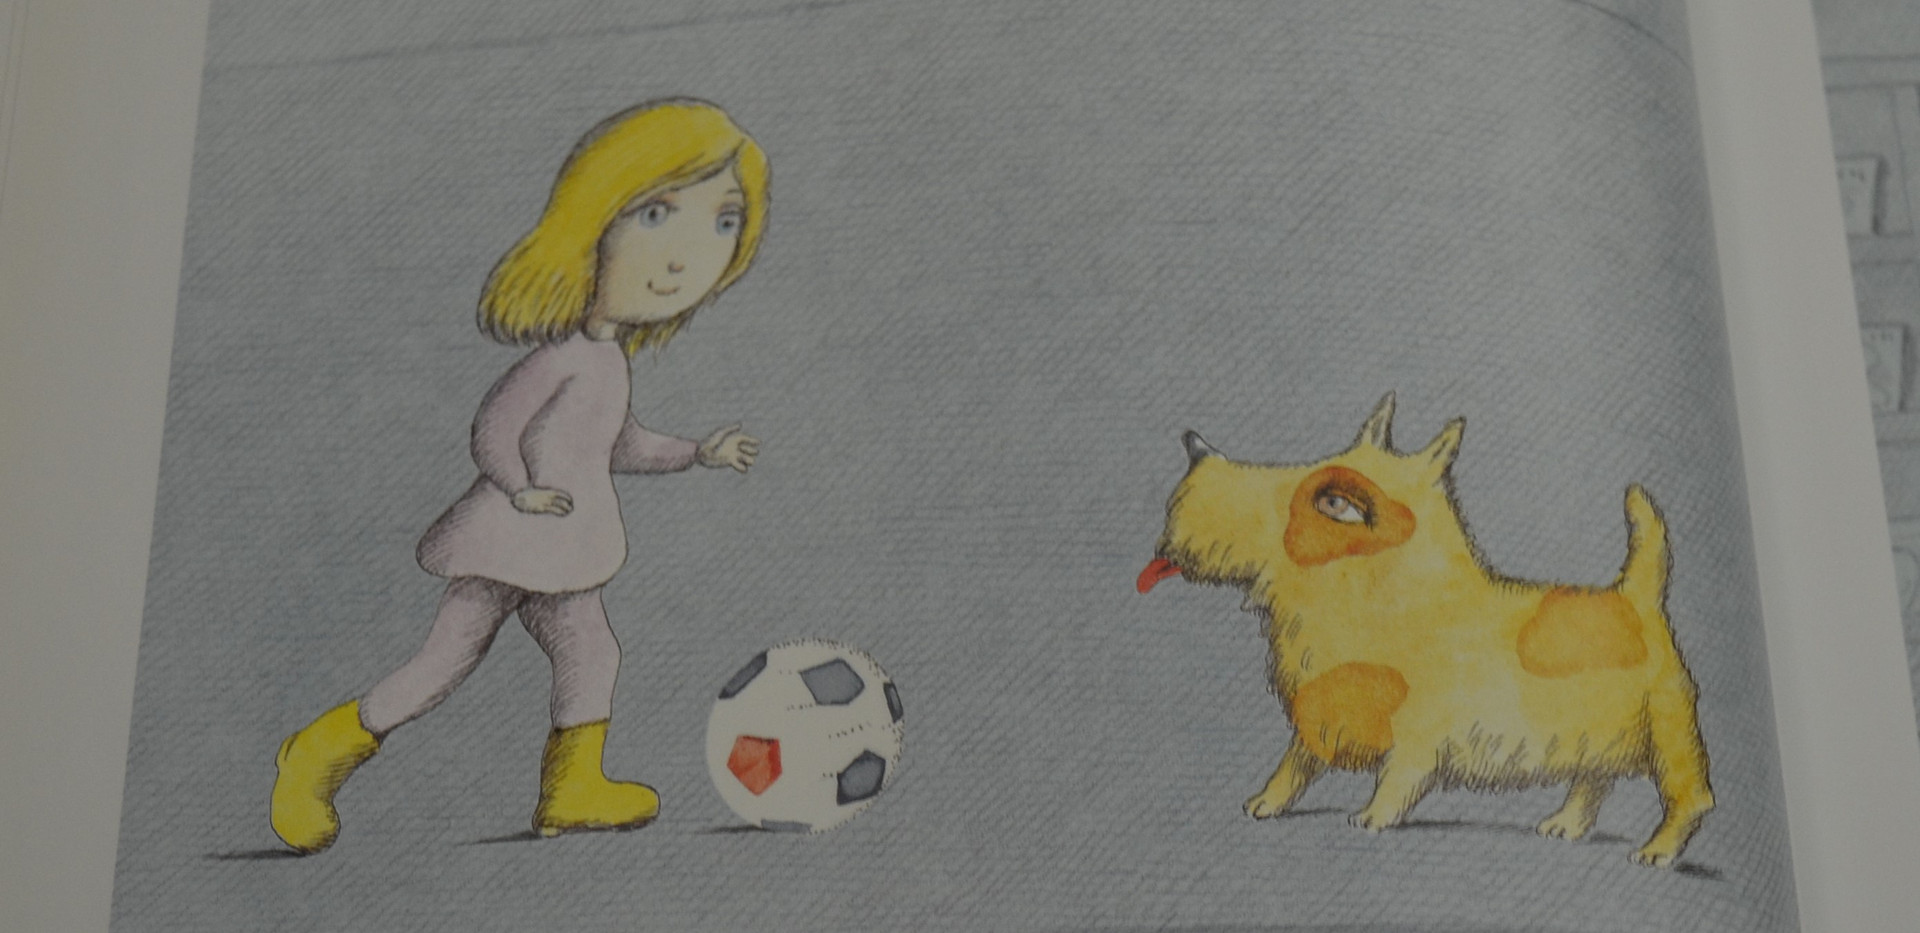 Page 9.jpgSis, Peter. Madlenka, Soccer Star. Farrar, Straus and Giroux, 2010. p.9. Osborne Collection of Early Children's Books.